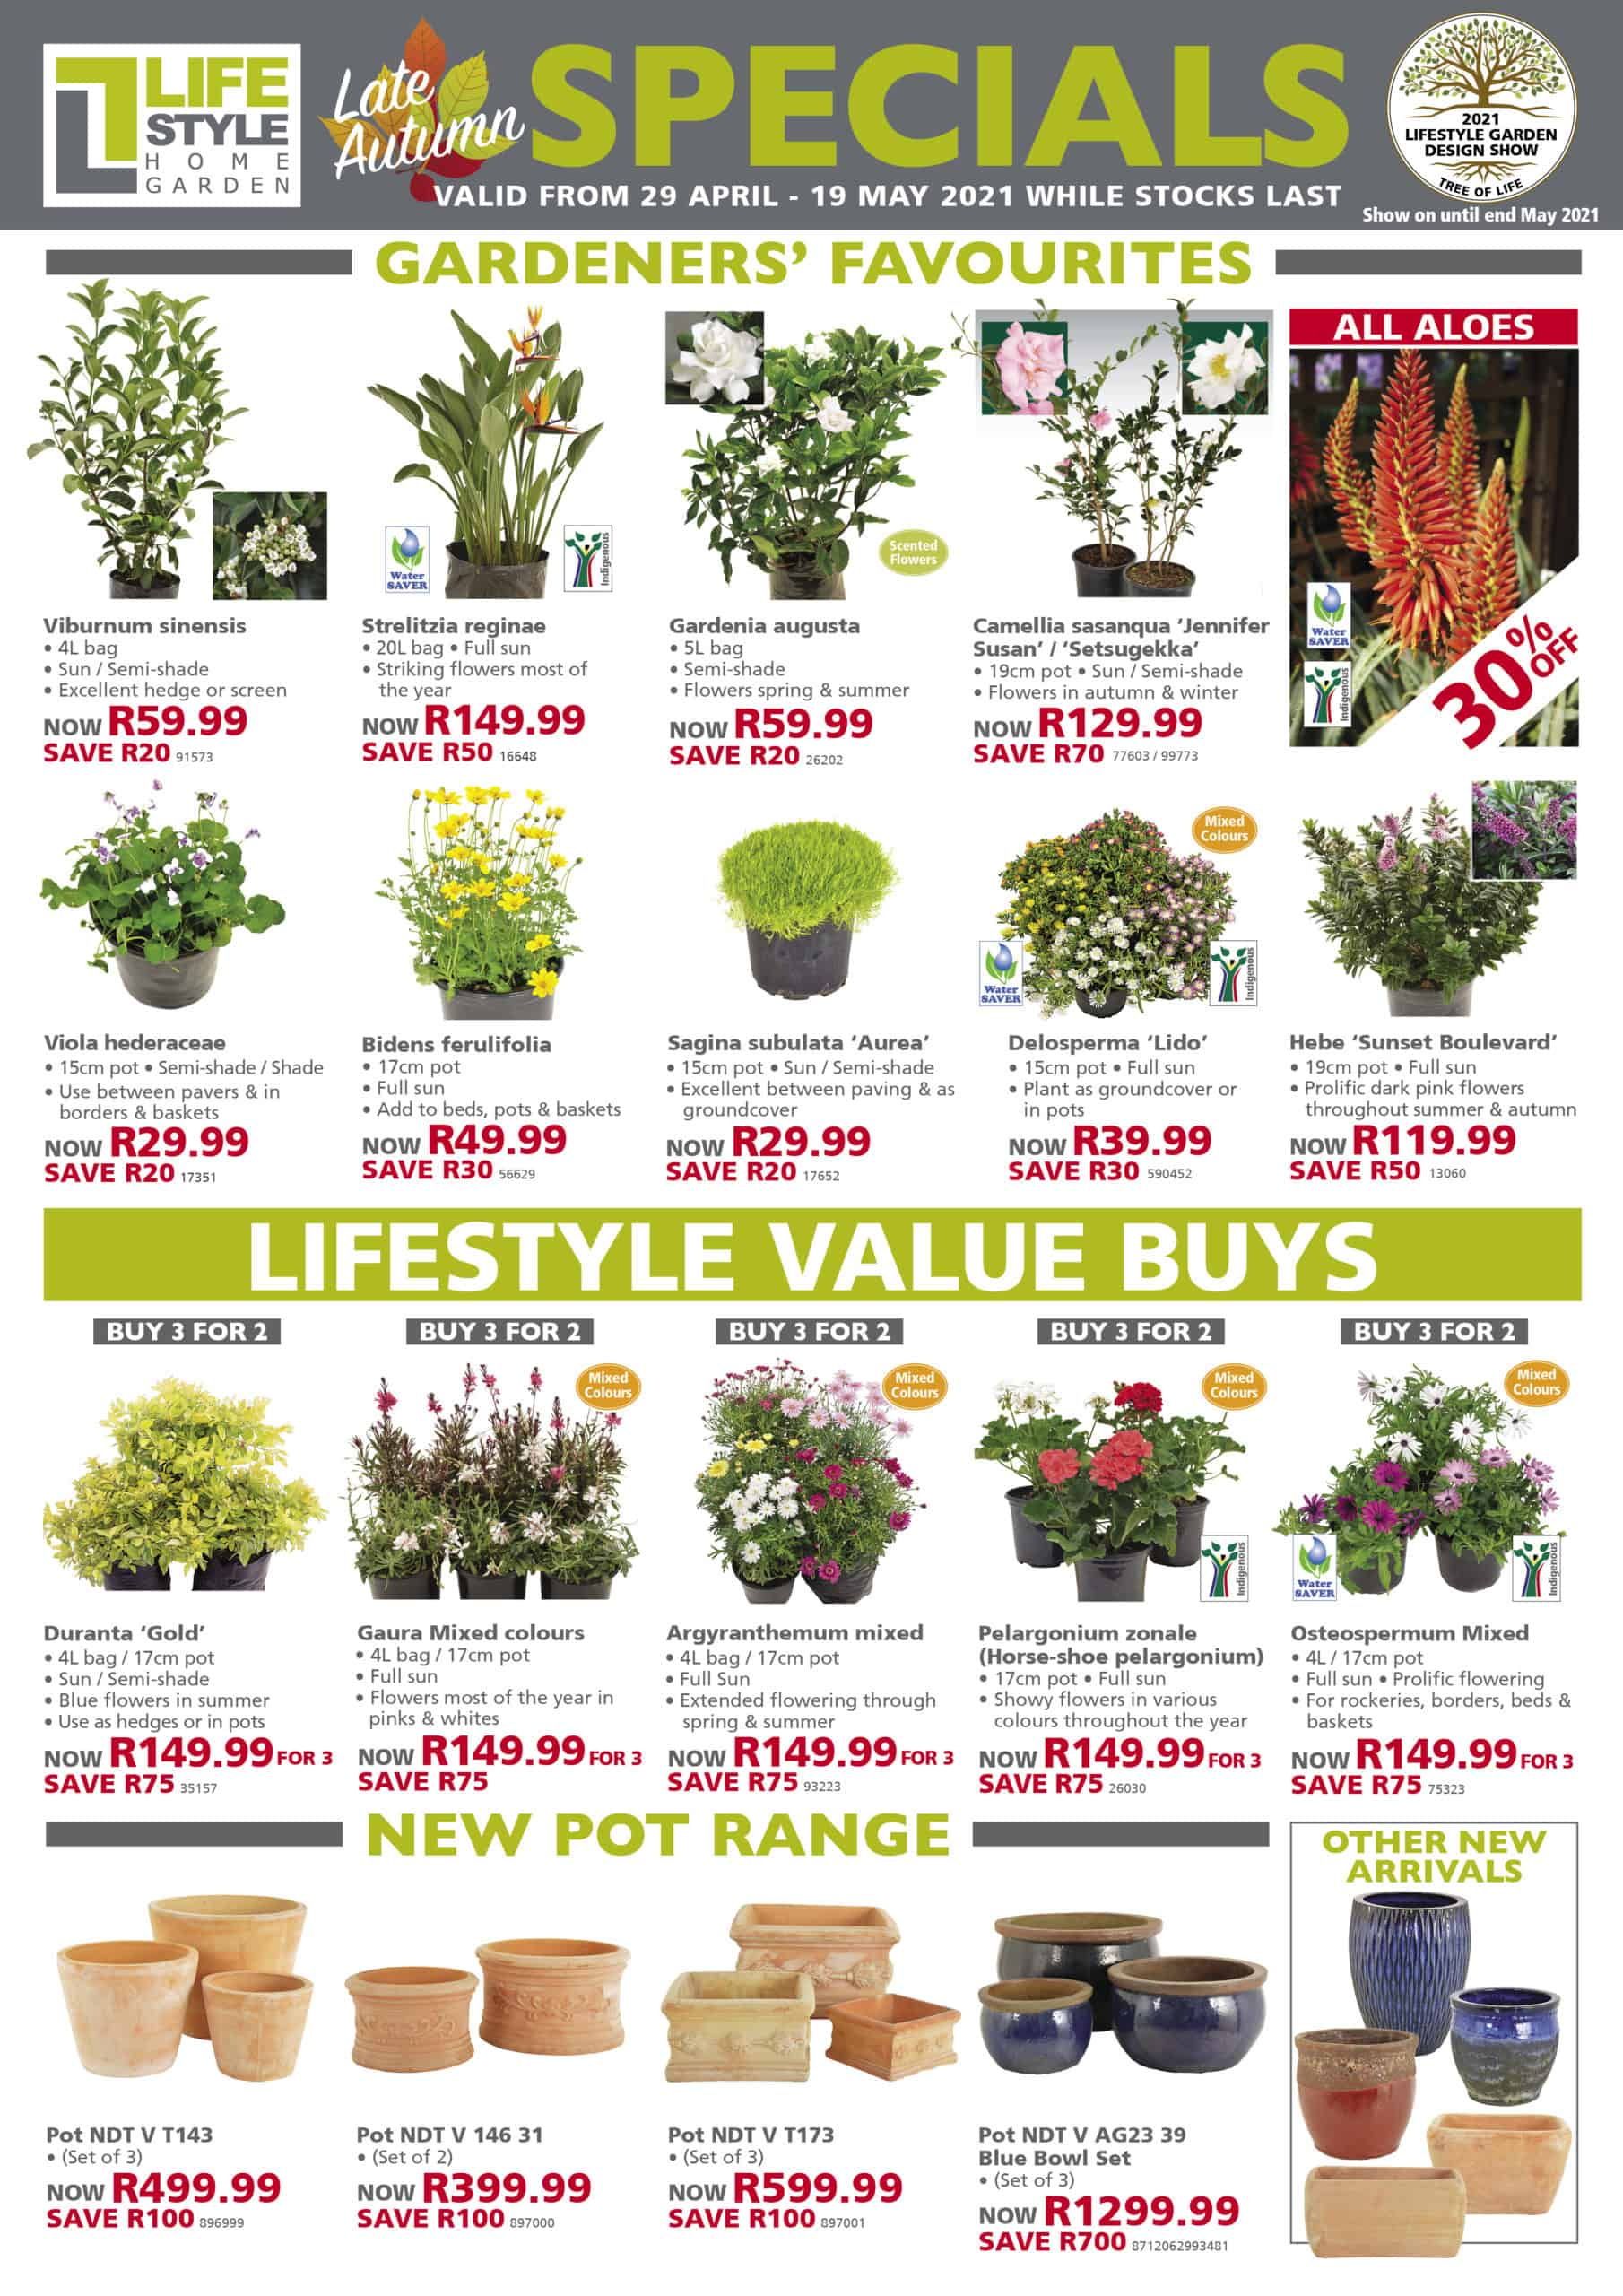 lifestyle home garden indoor plants grow your own south africa johannesburg pots landscape grasses late autumn deciduous fruit and nut trees shrubs hedges stylish stands indigenous waterwise healthy garden trellises outdoorscaping for the braai in the garden water features gardeners favourites specials